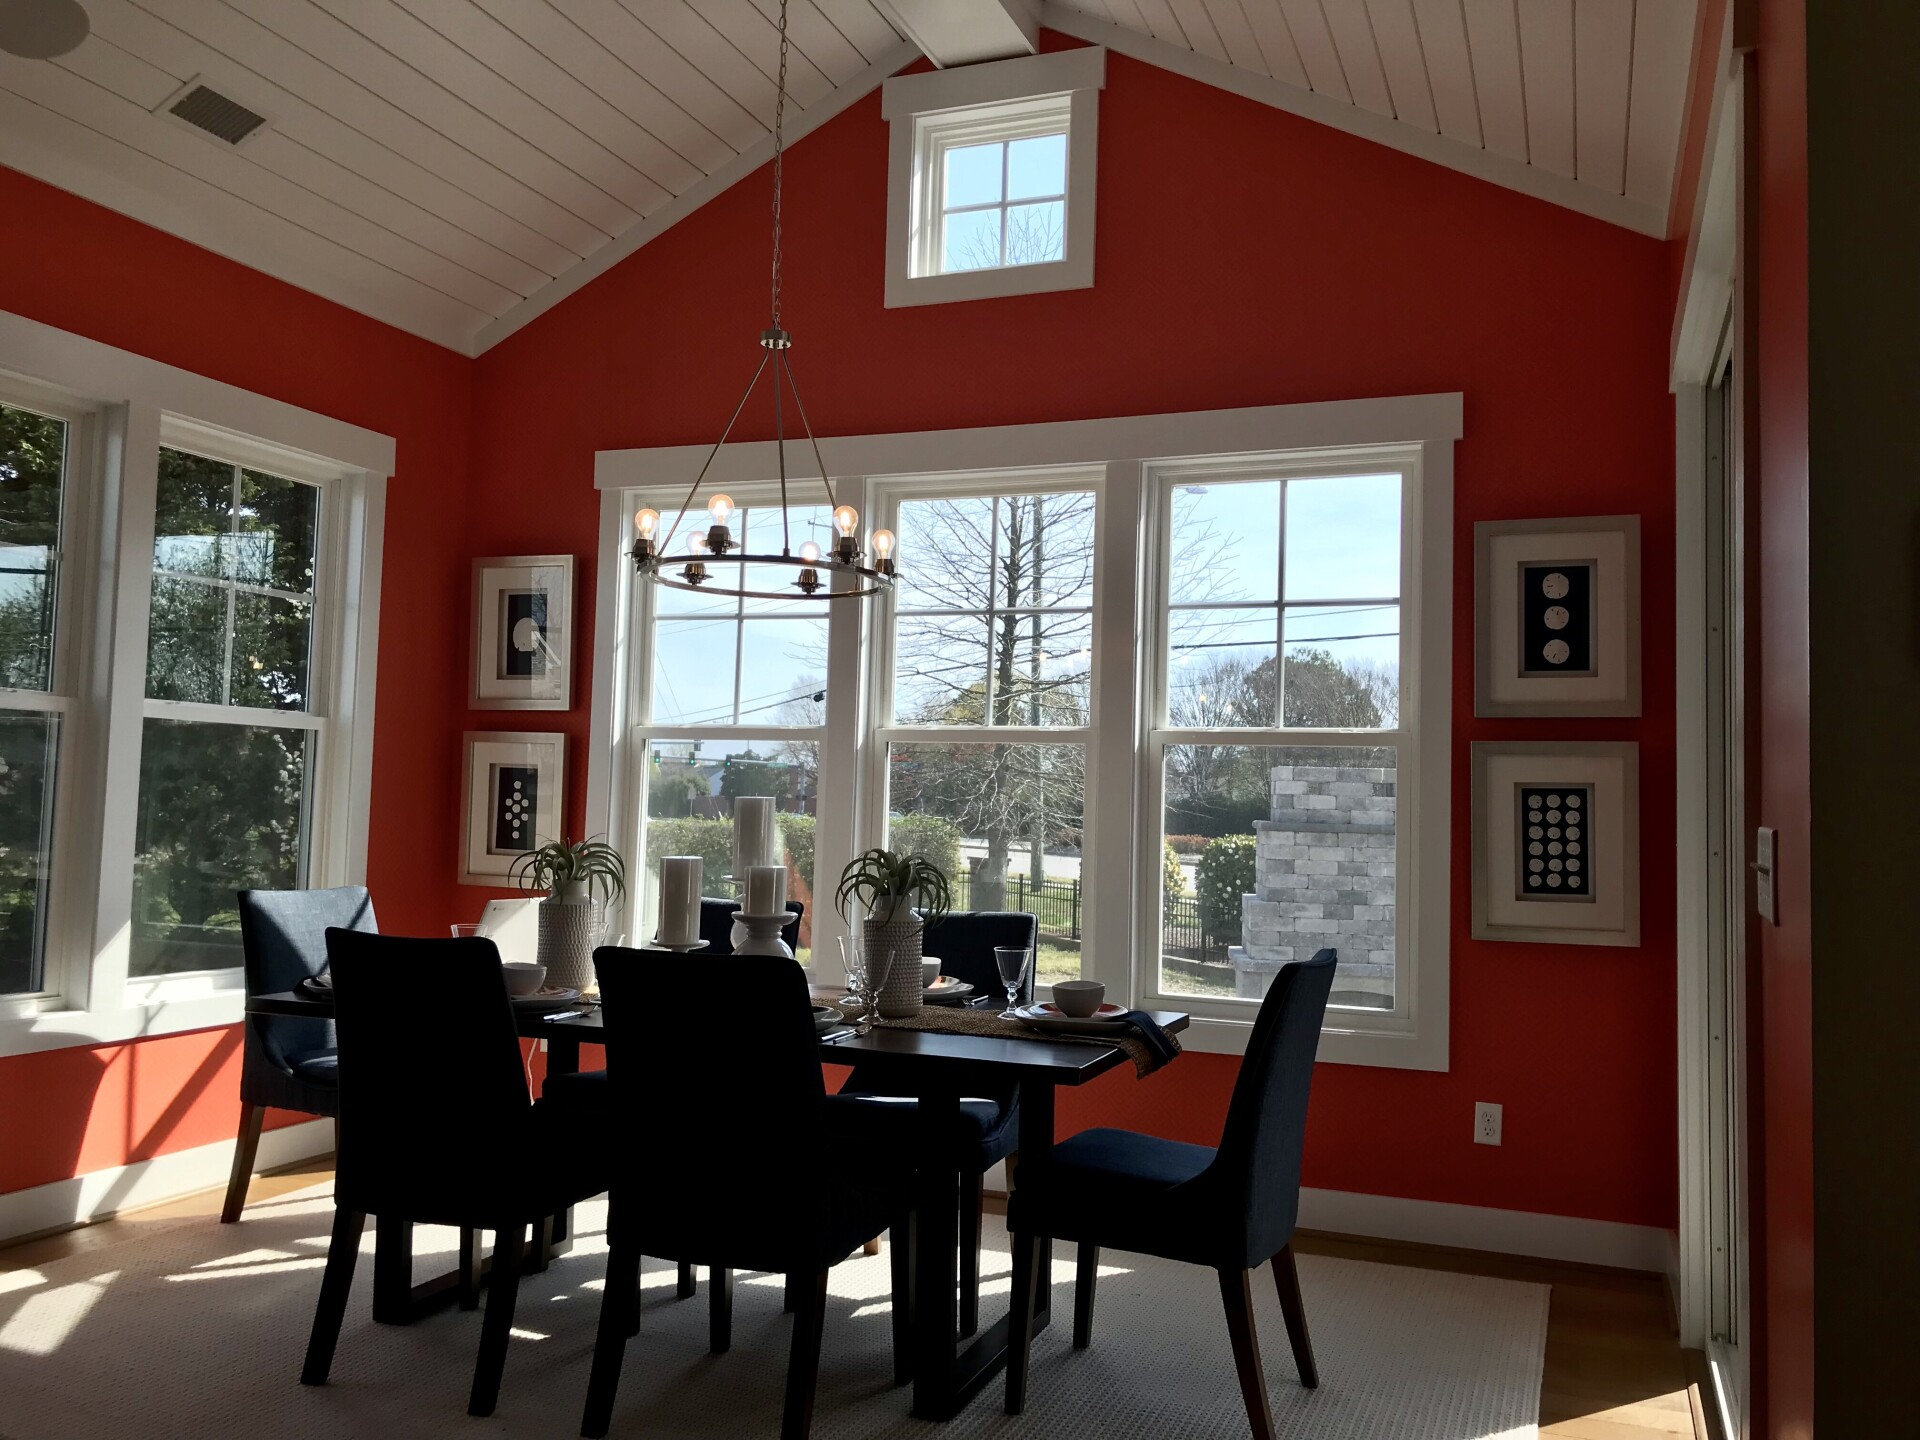 Photos: It's finished! Open house weekends for the 2019 St. Jude Dream Home start March 23